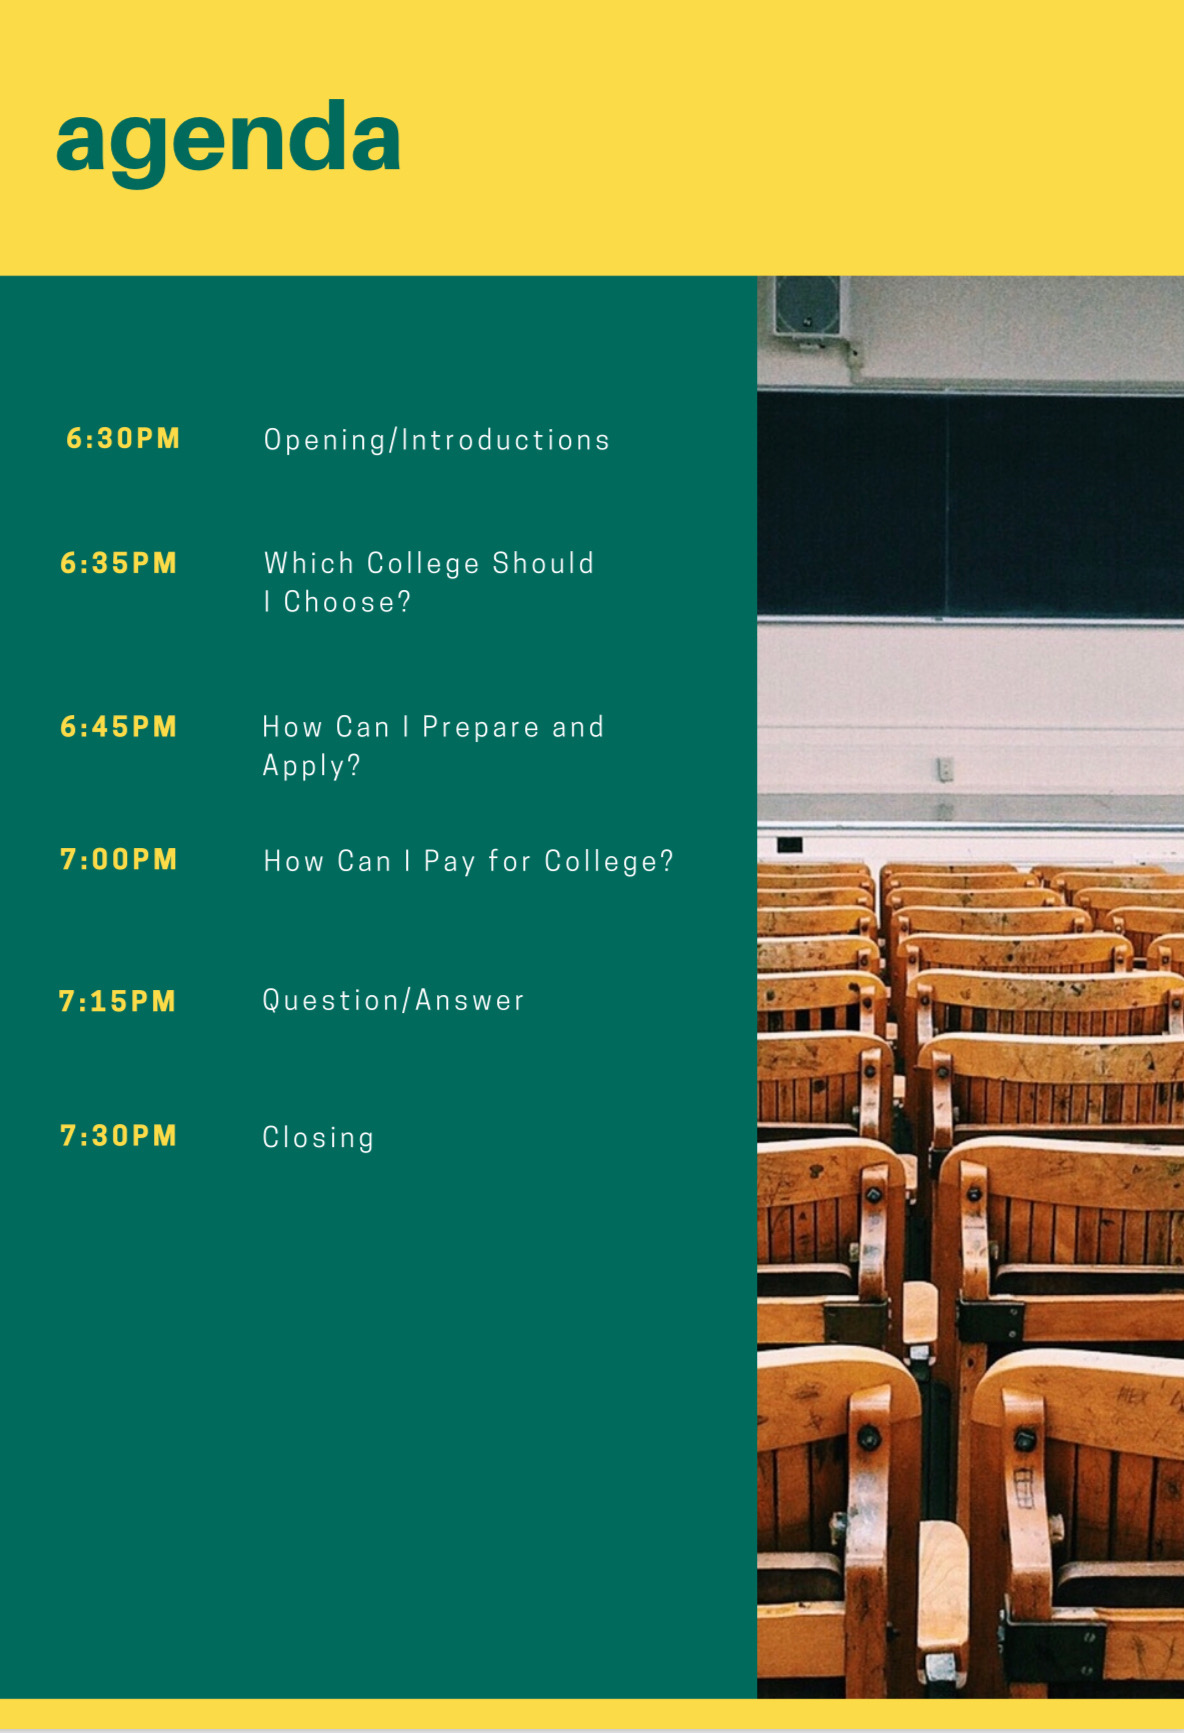 Agenda Are You Ready For College